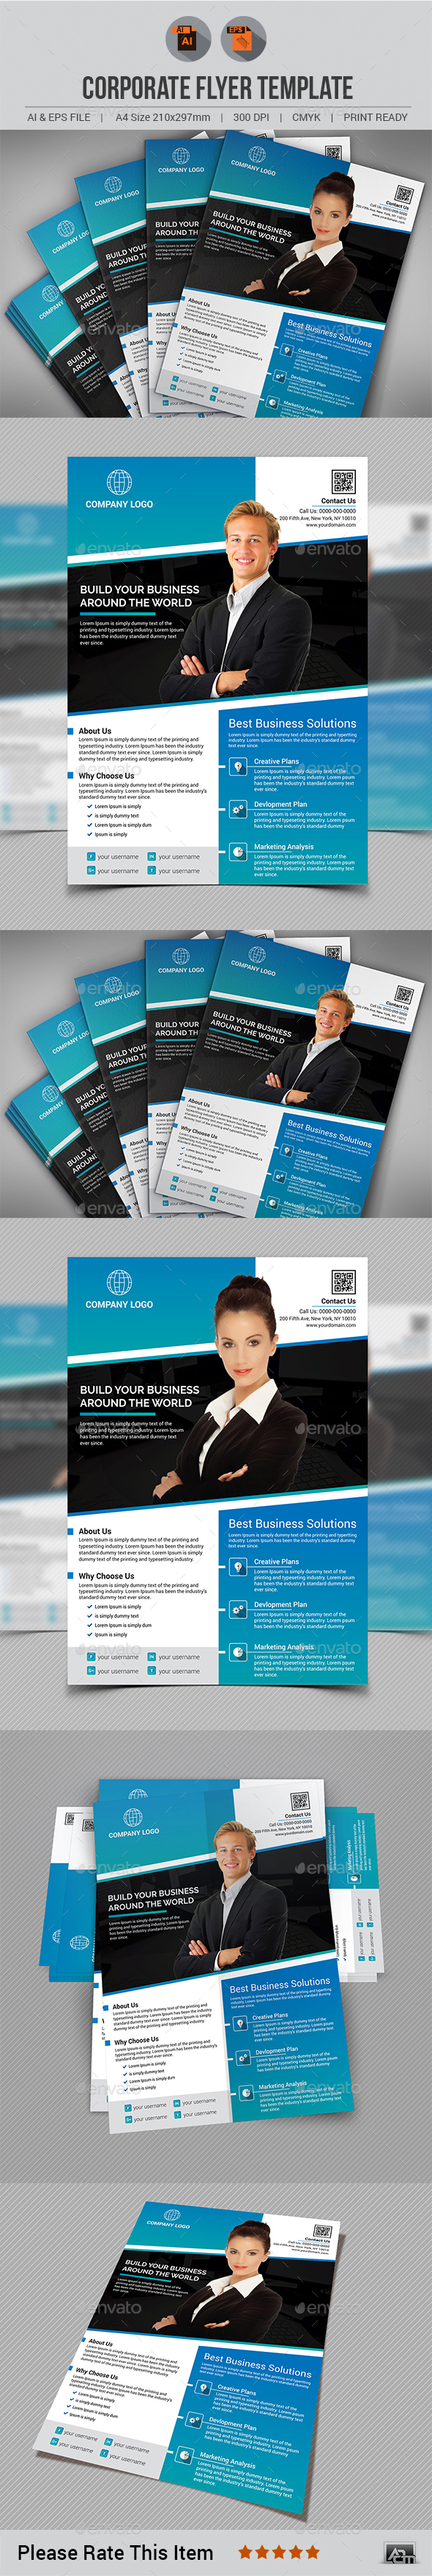 Corporate Flyer Template V5 - Corporate Flyers